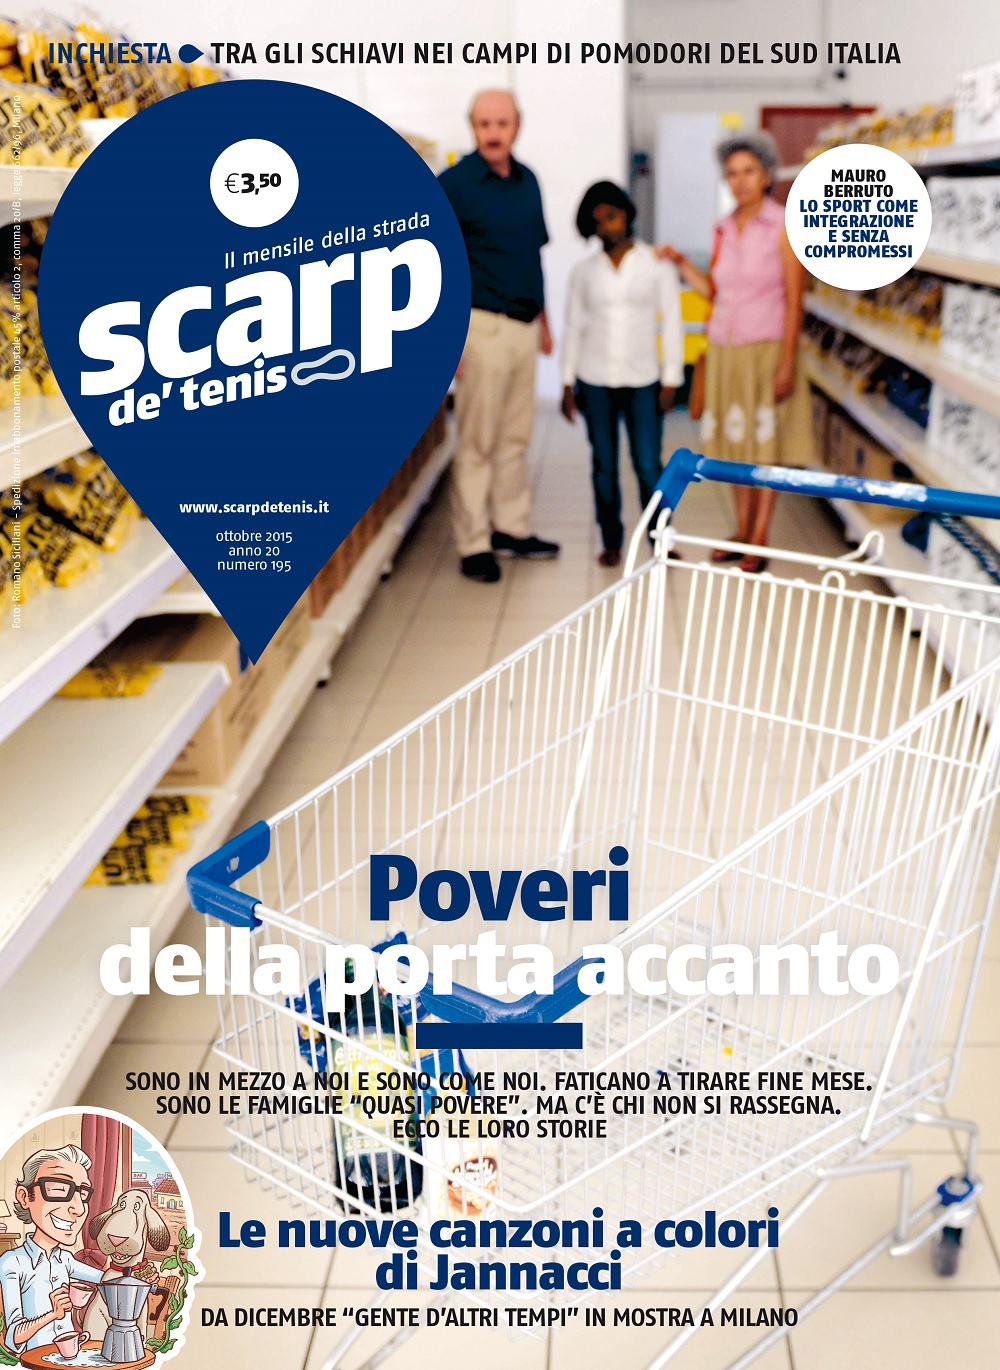 The latest edition of Scarp de' tenis